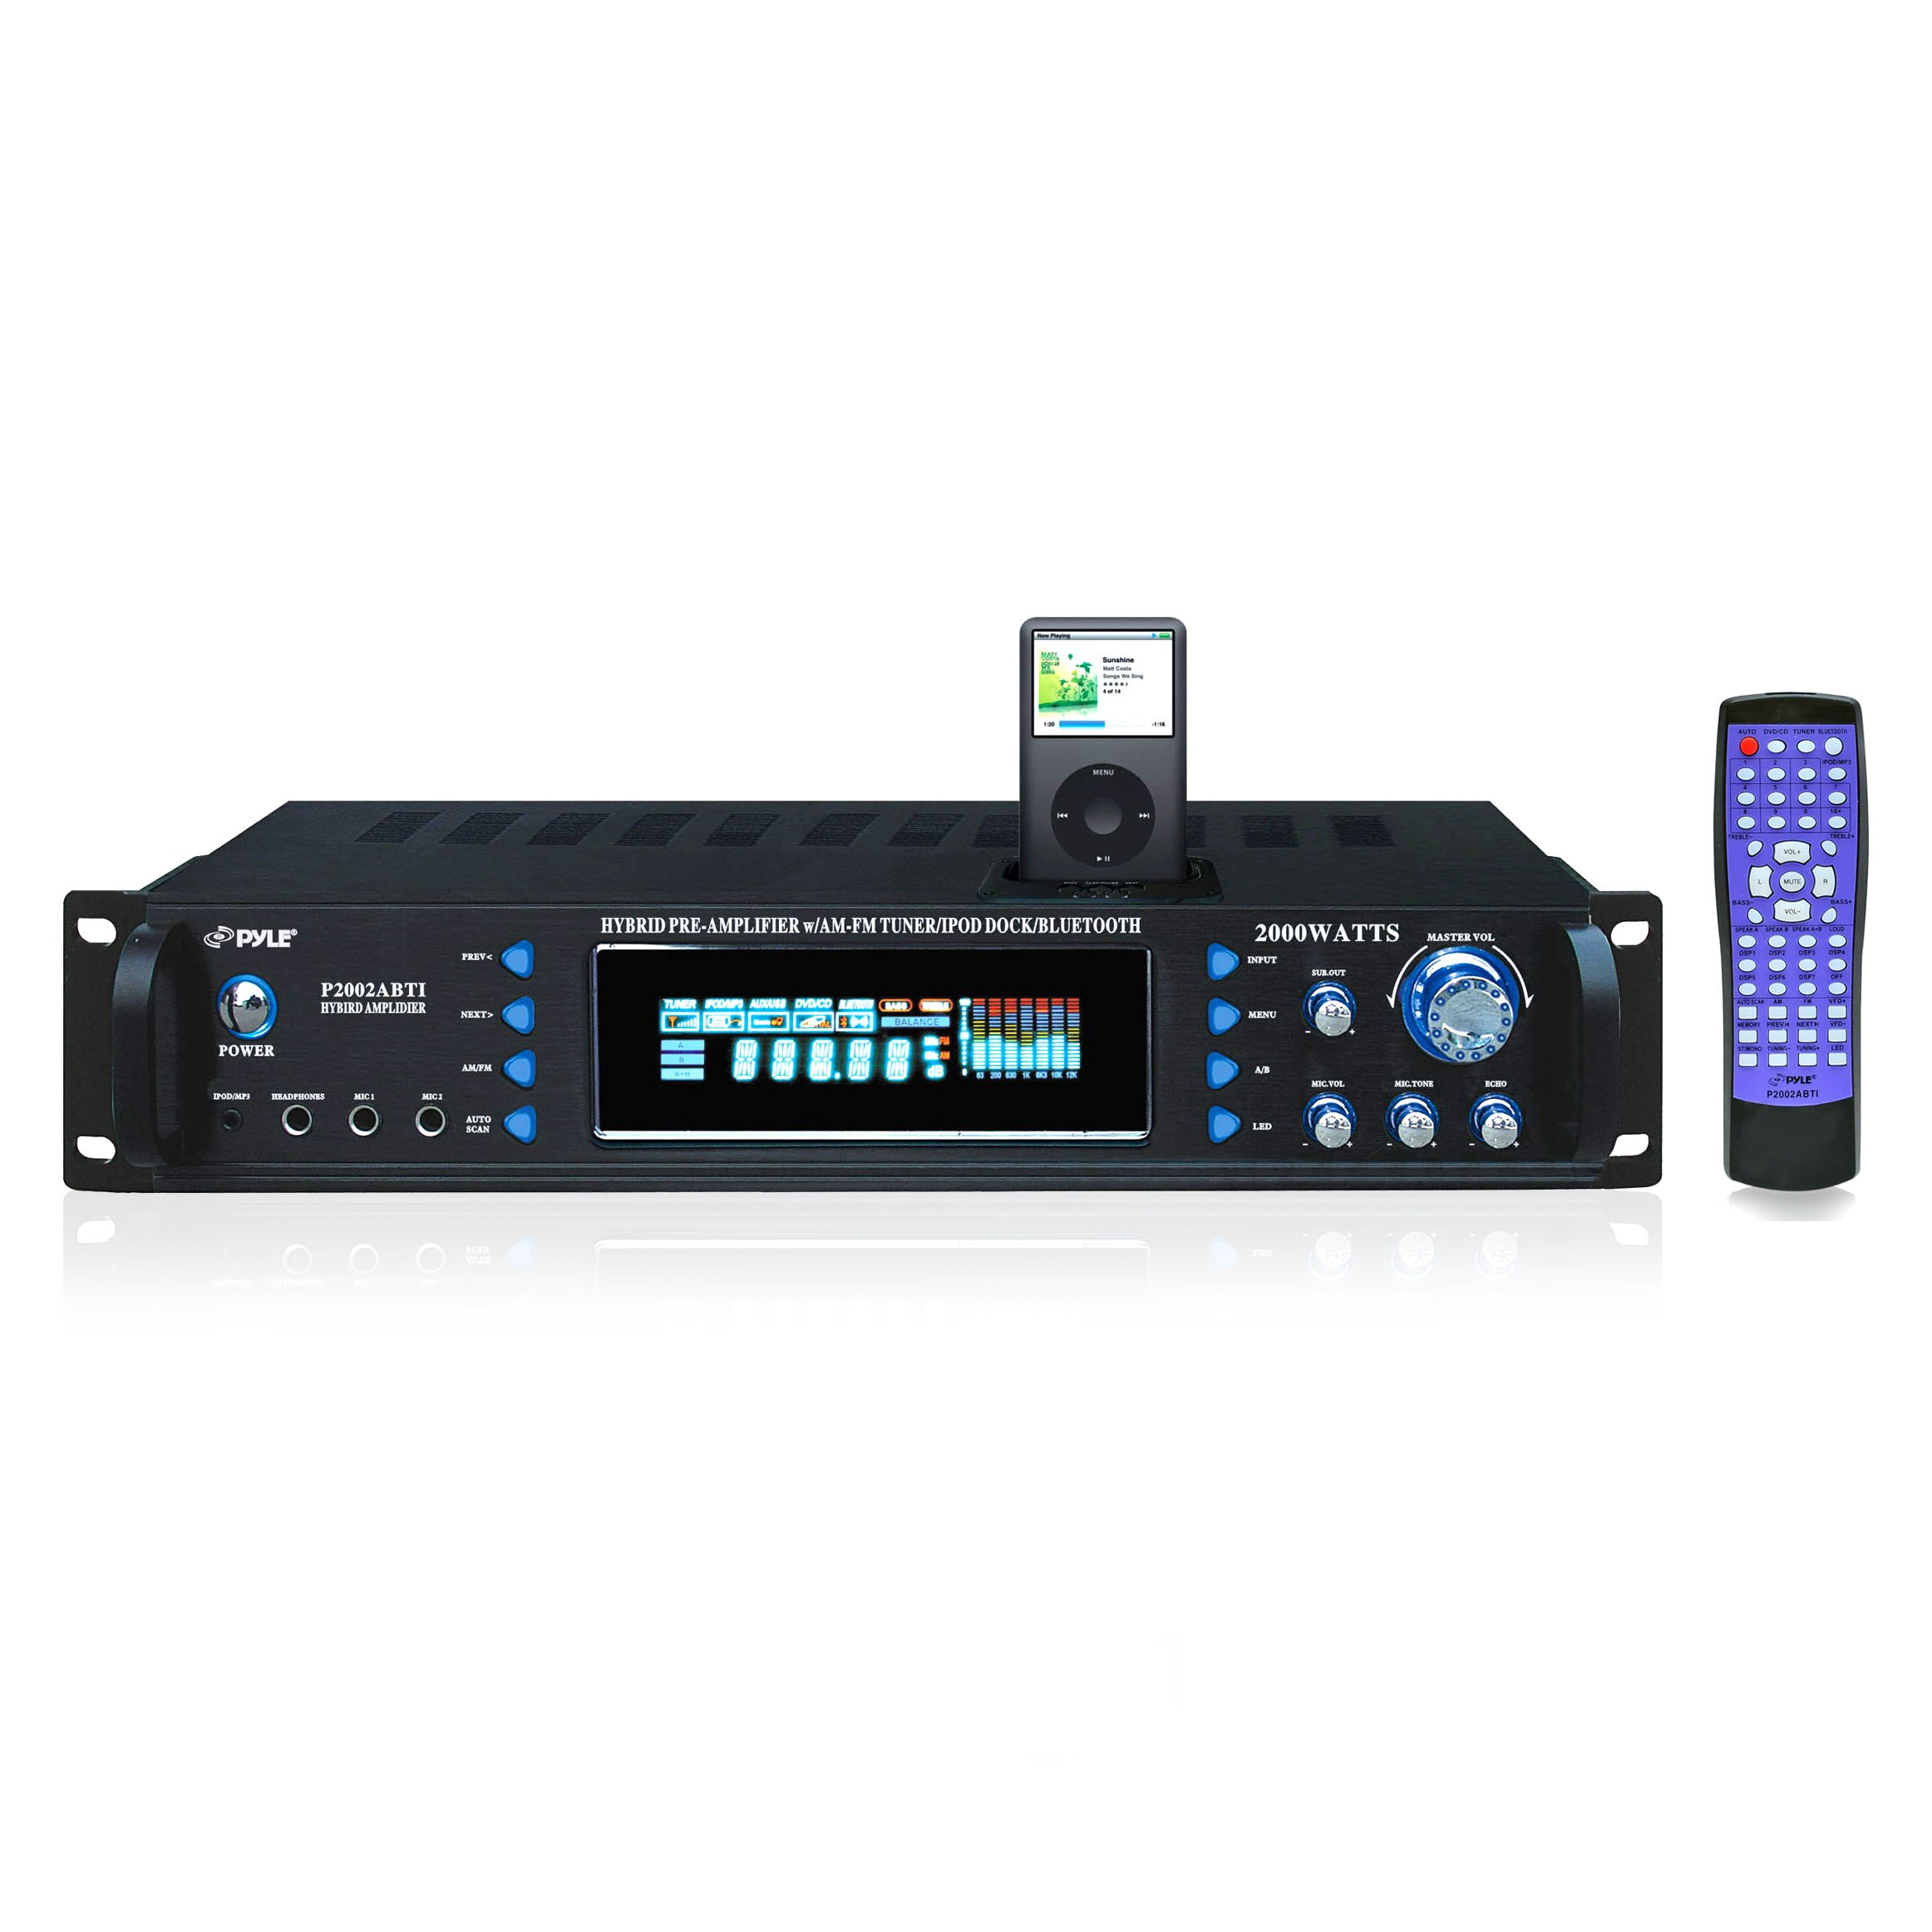 Pyle P2002ABTI 2000 Watts Hybrid Receiver and Pre-Amplifier with AM-FM Tuner/iPod Docking Station and Bluetooth by Pyle